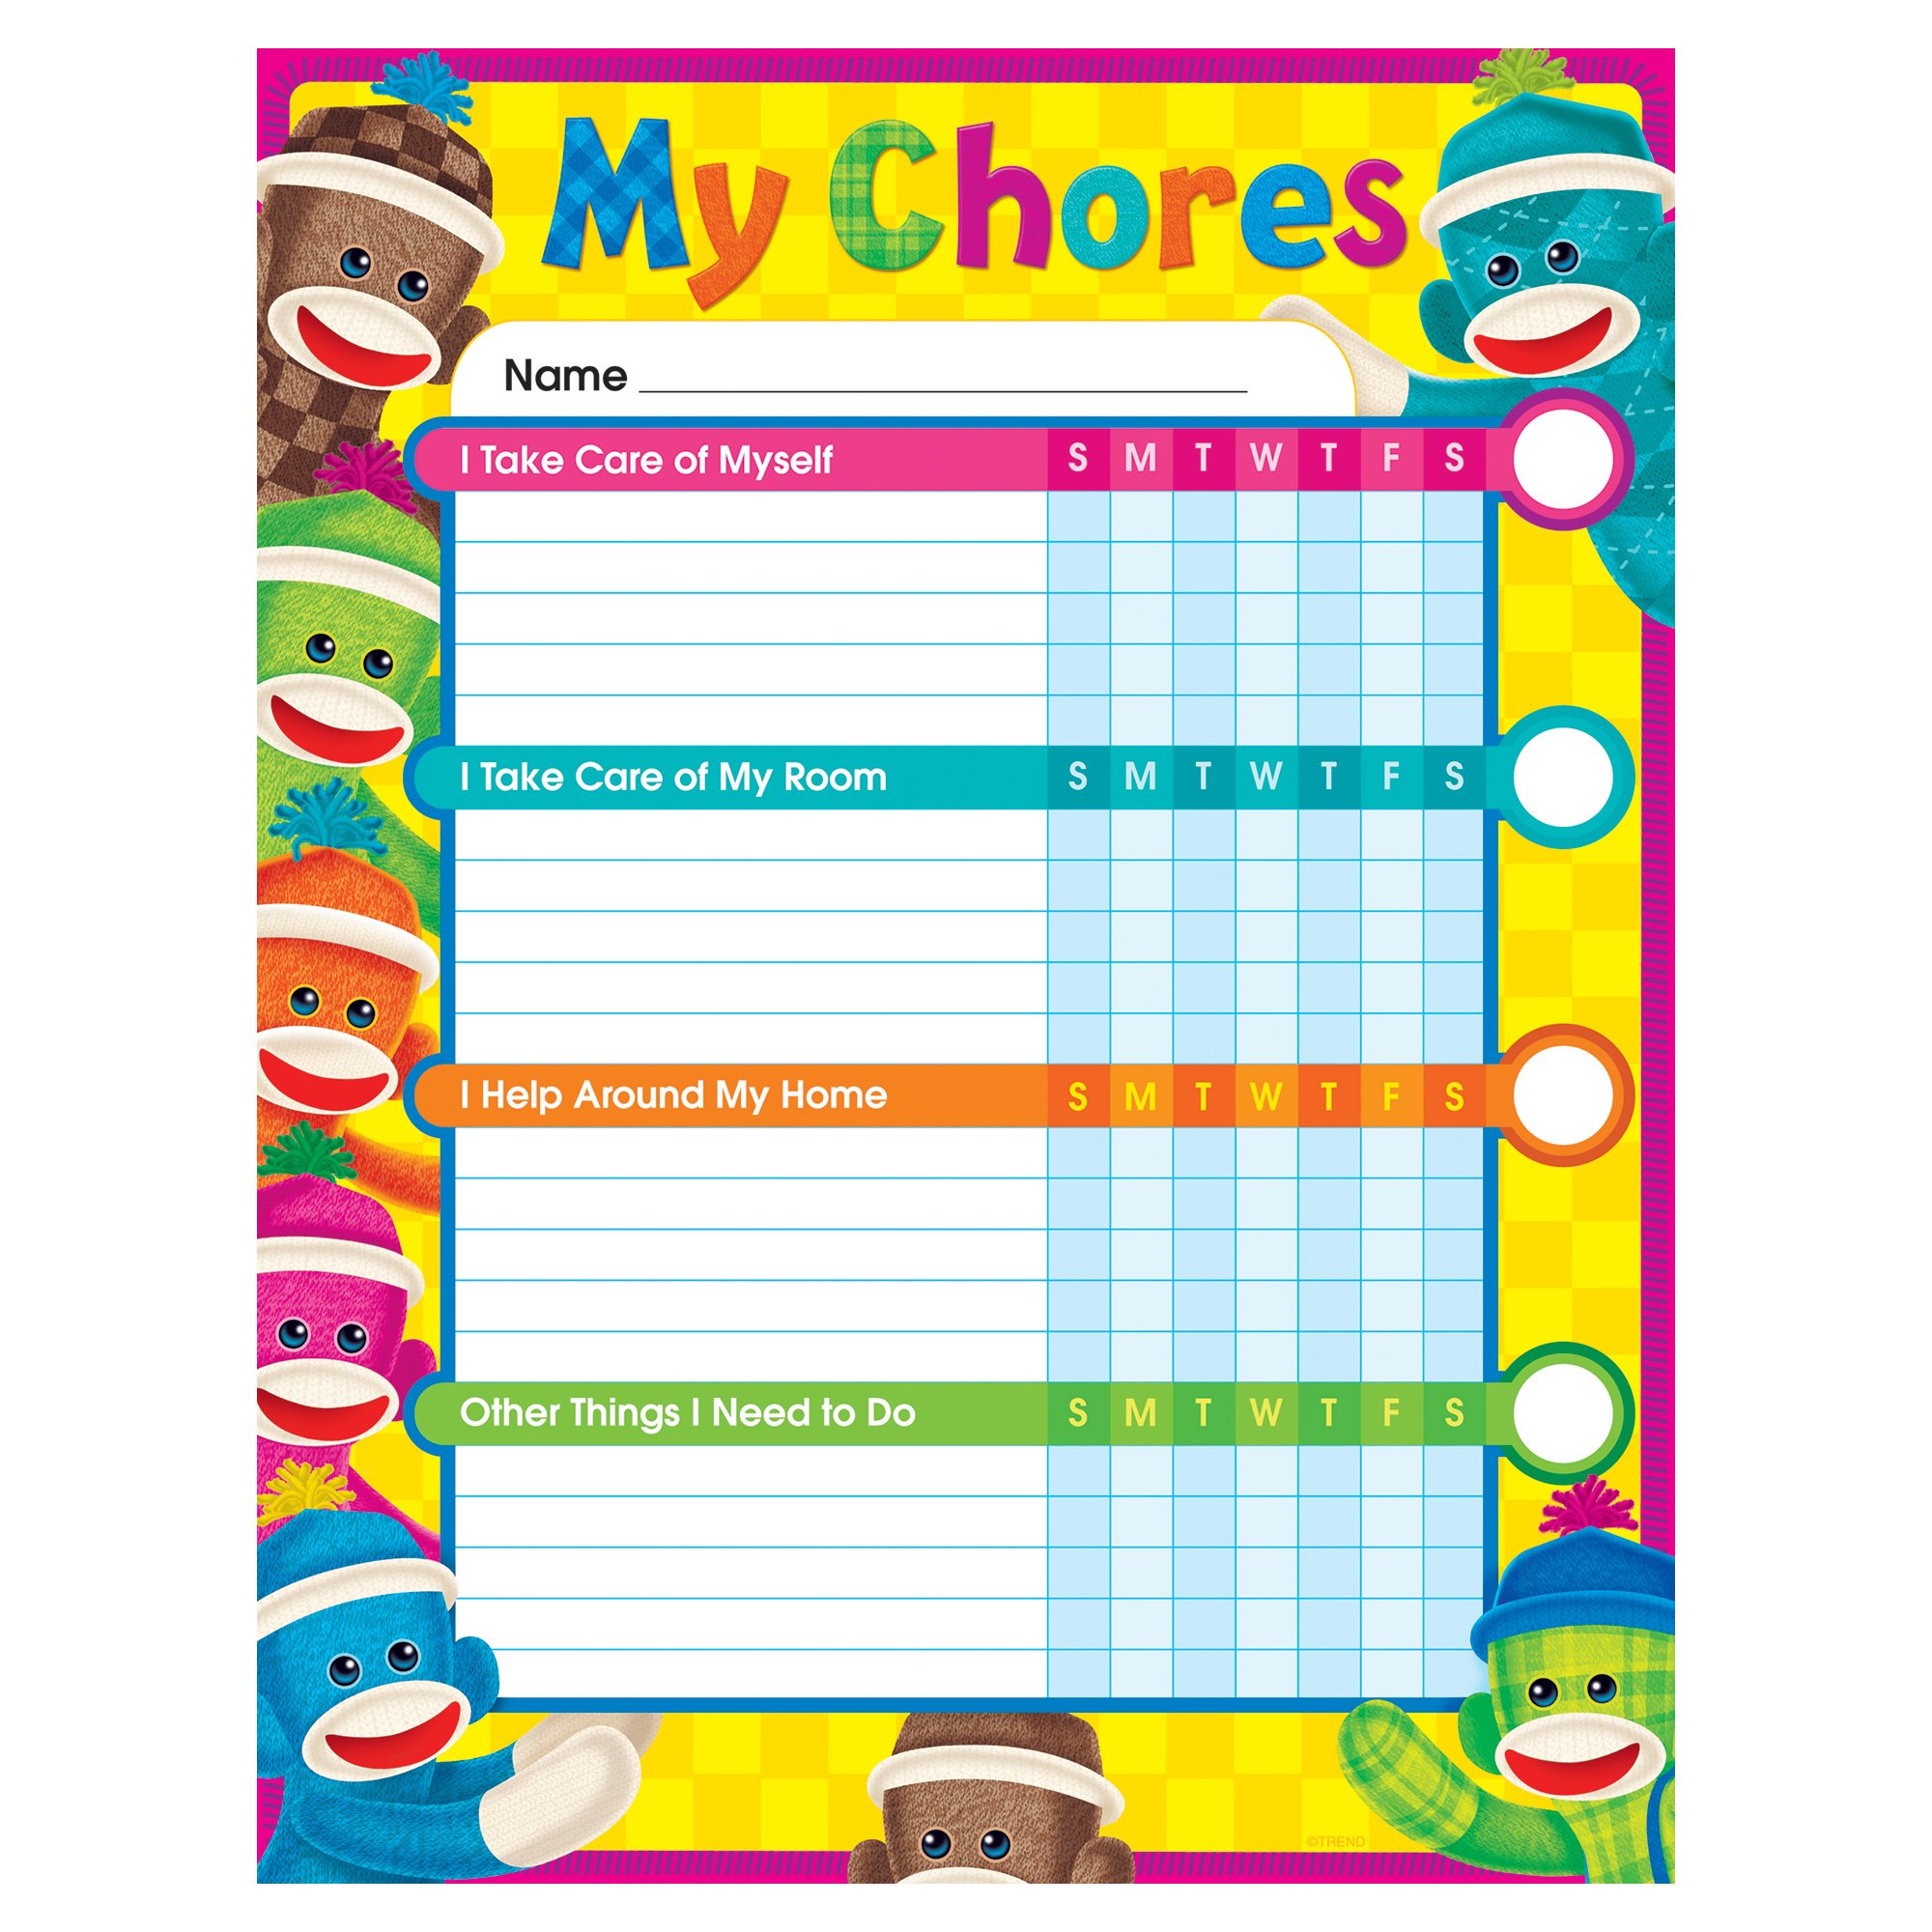 TREND enterprises, Inc. T-73145BN Sock Monkeys Chore Charts, 25 Per Pack, Pack of 6